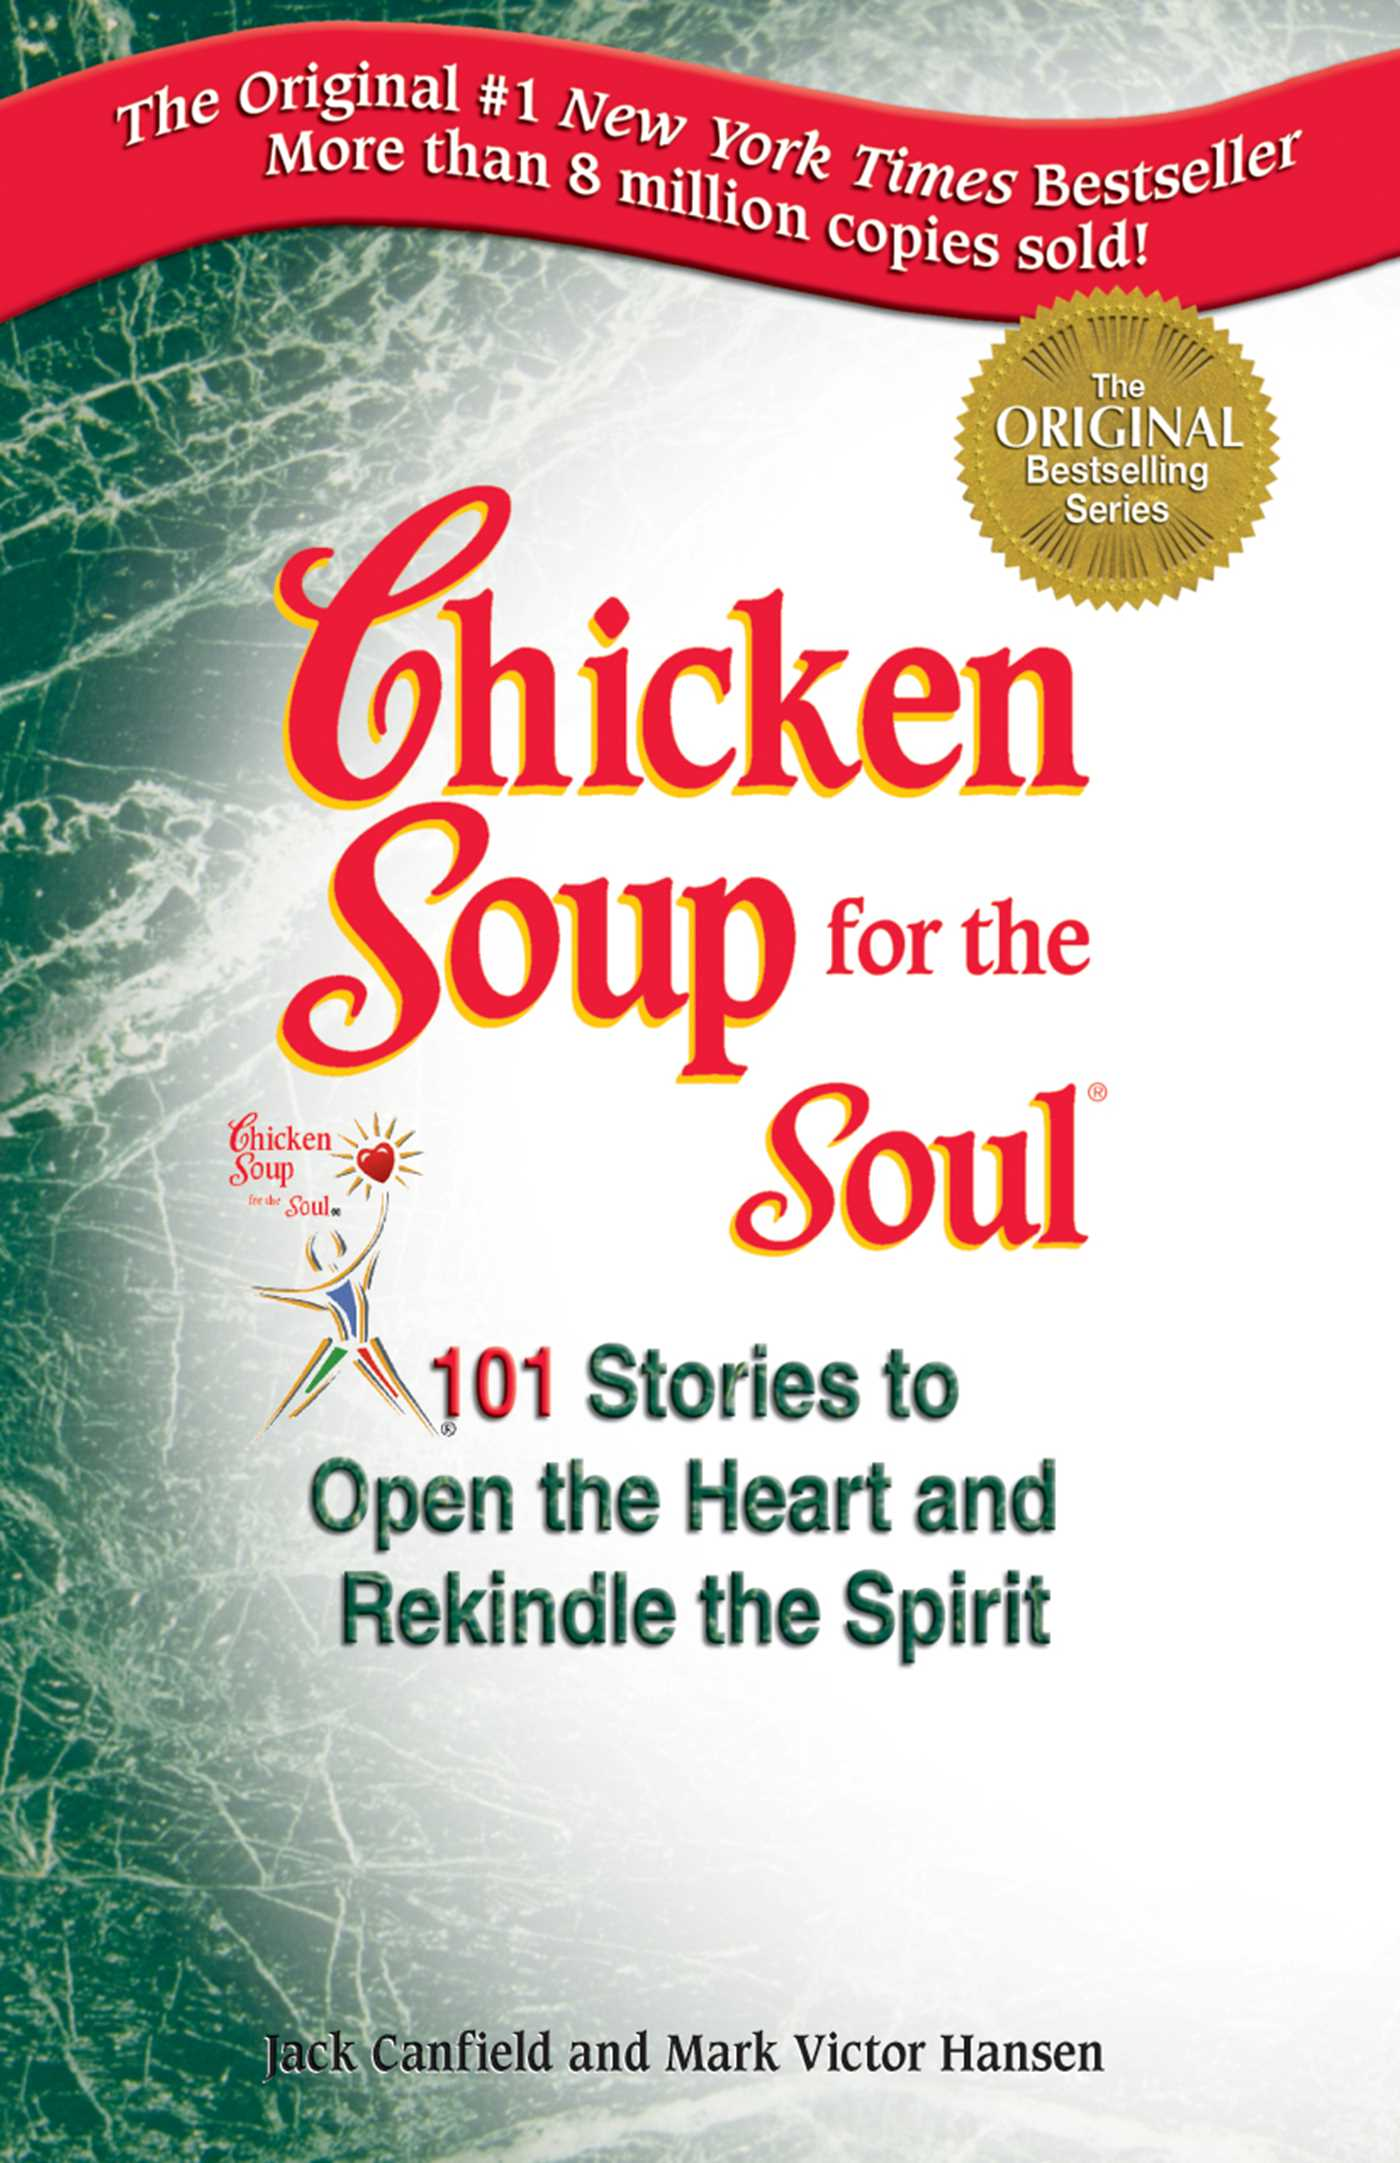 Chicken Soup for the Soul Stories to Open the Heart and Rekindle the Spirit